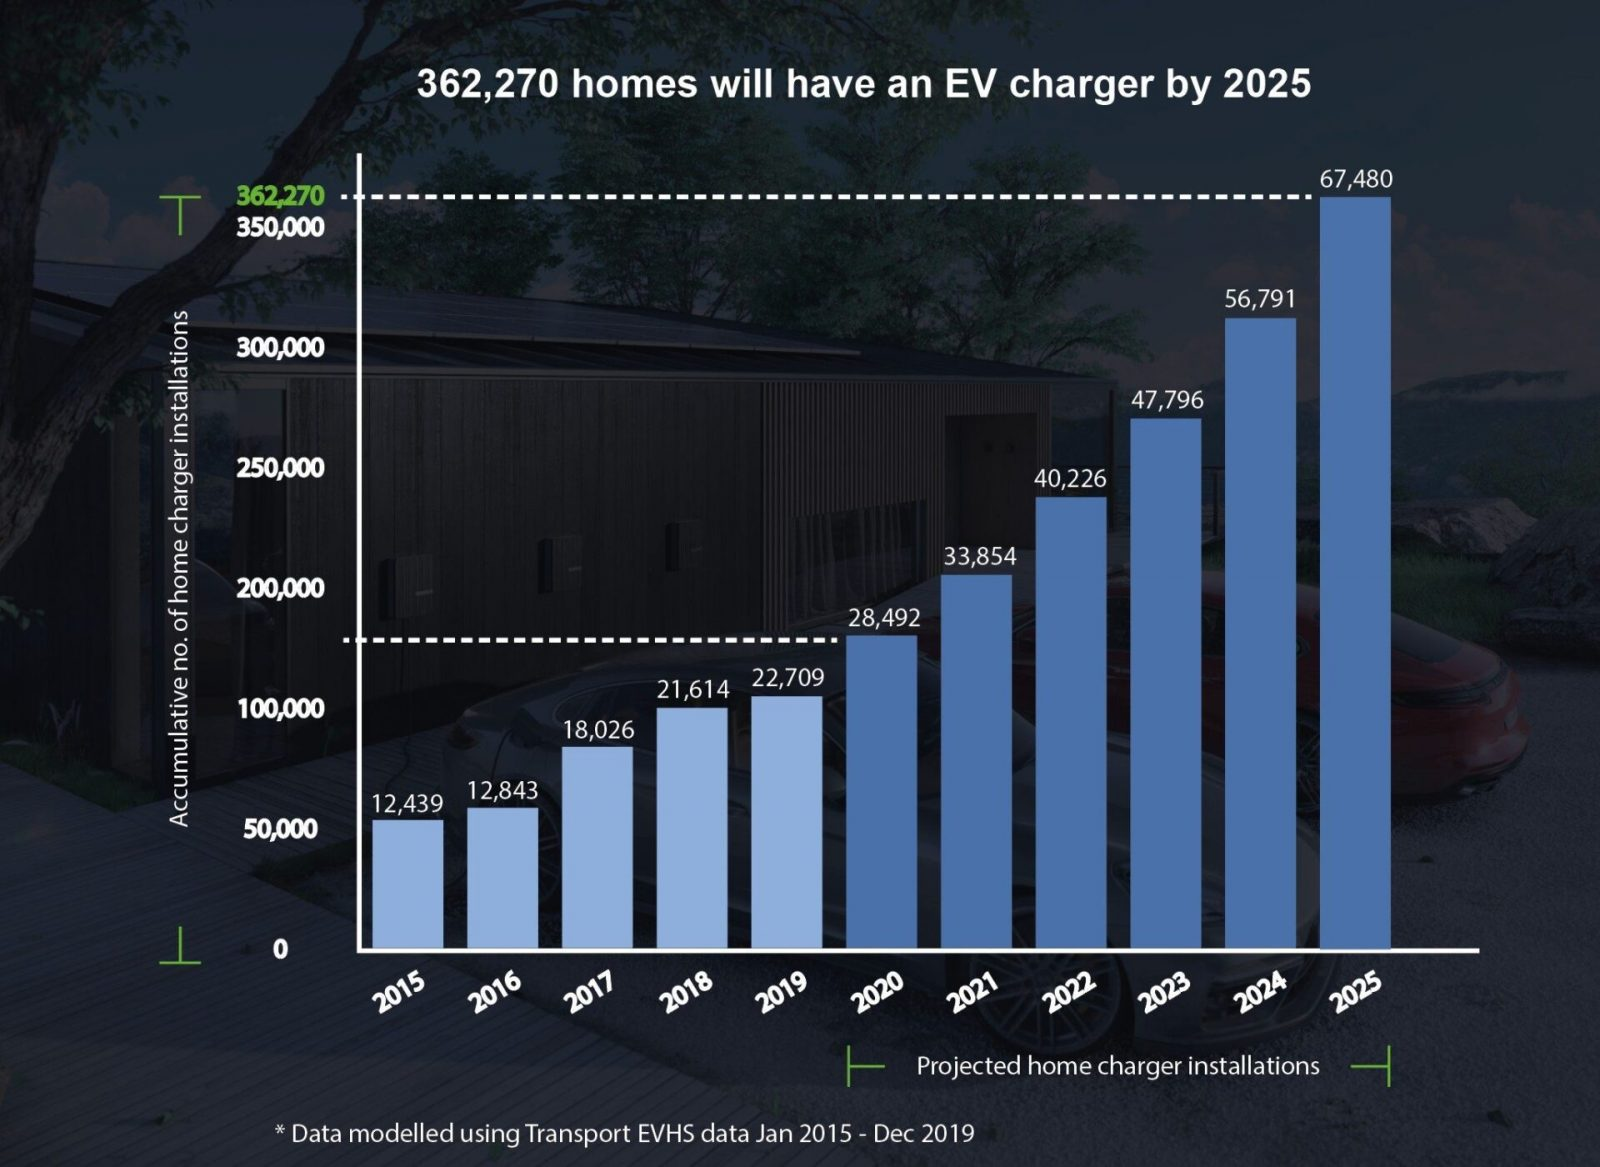 EGEB: More then 350,000 UK homes will have EV home chargers by 2025